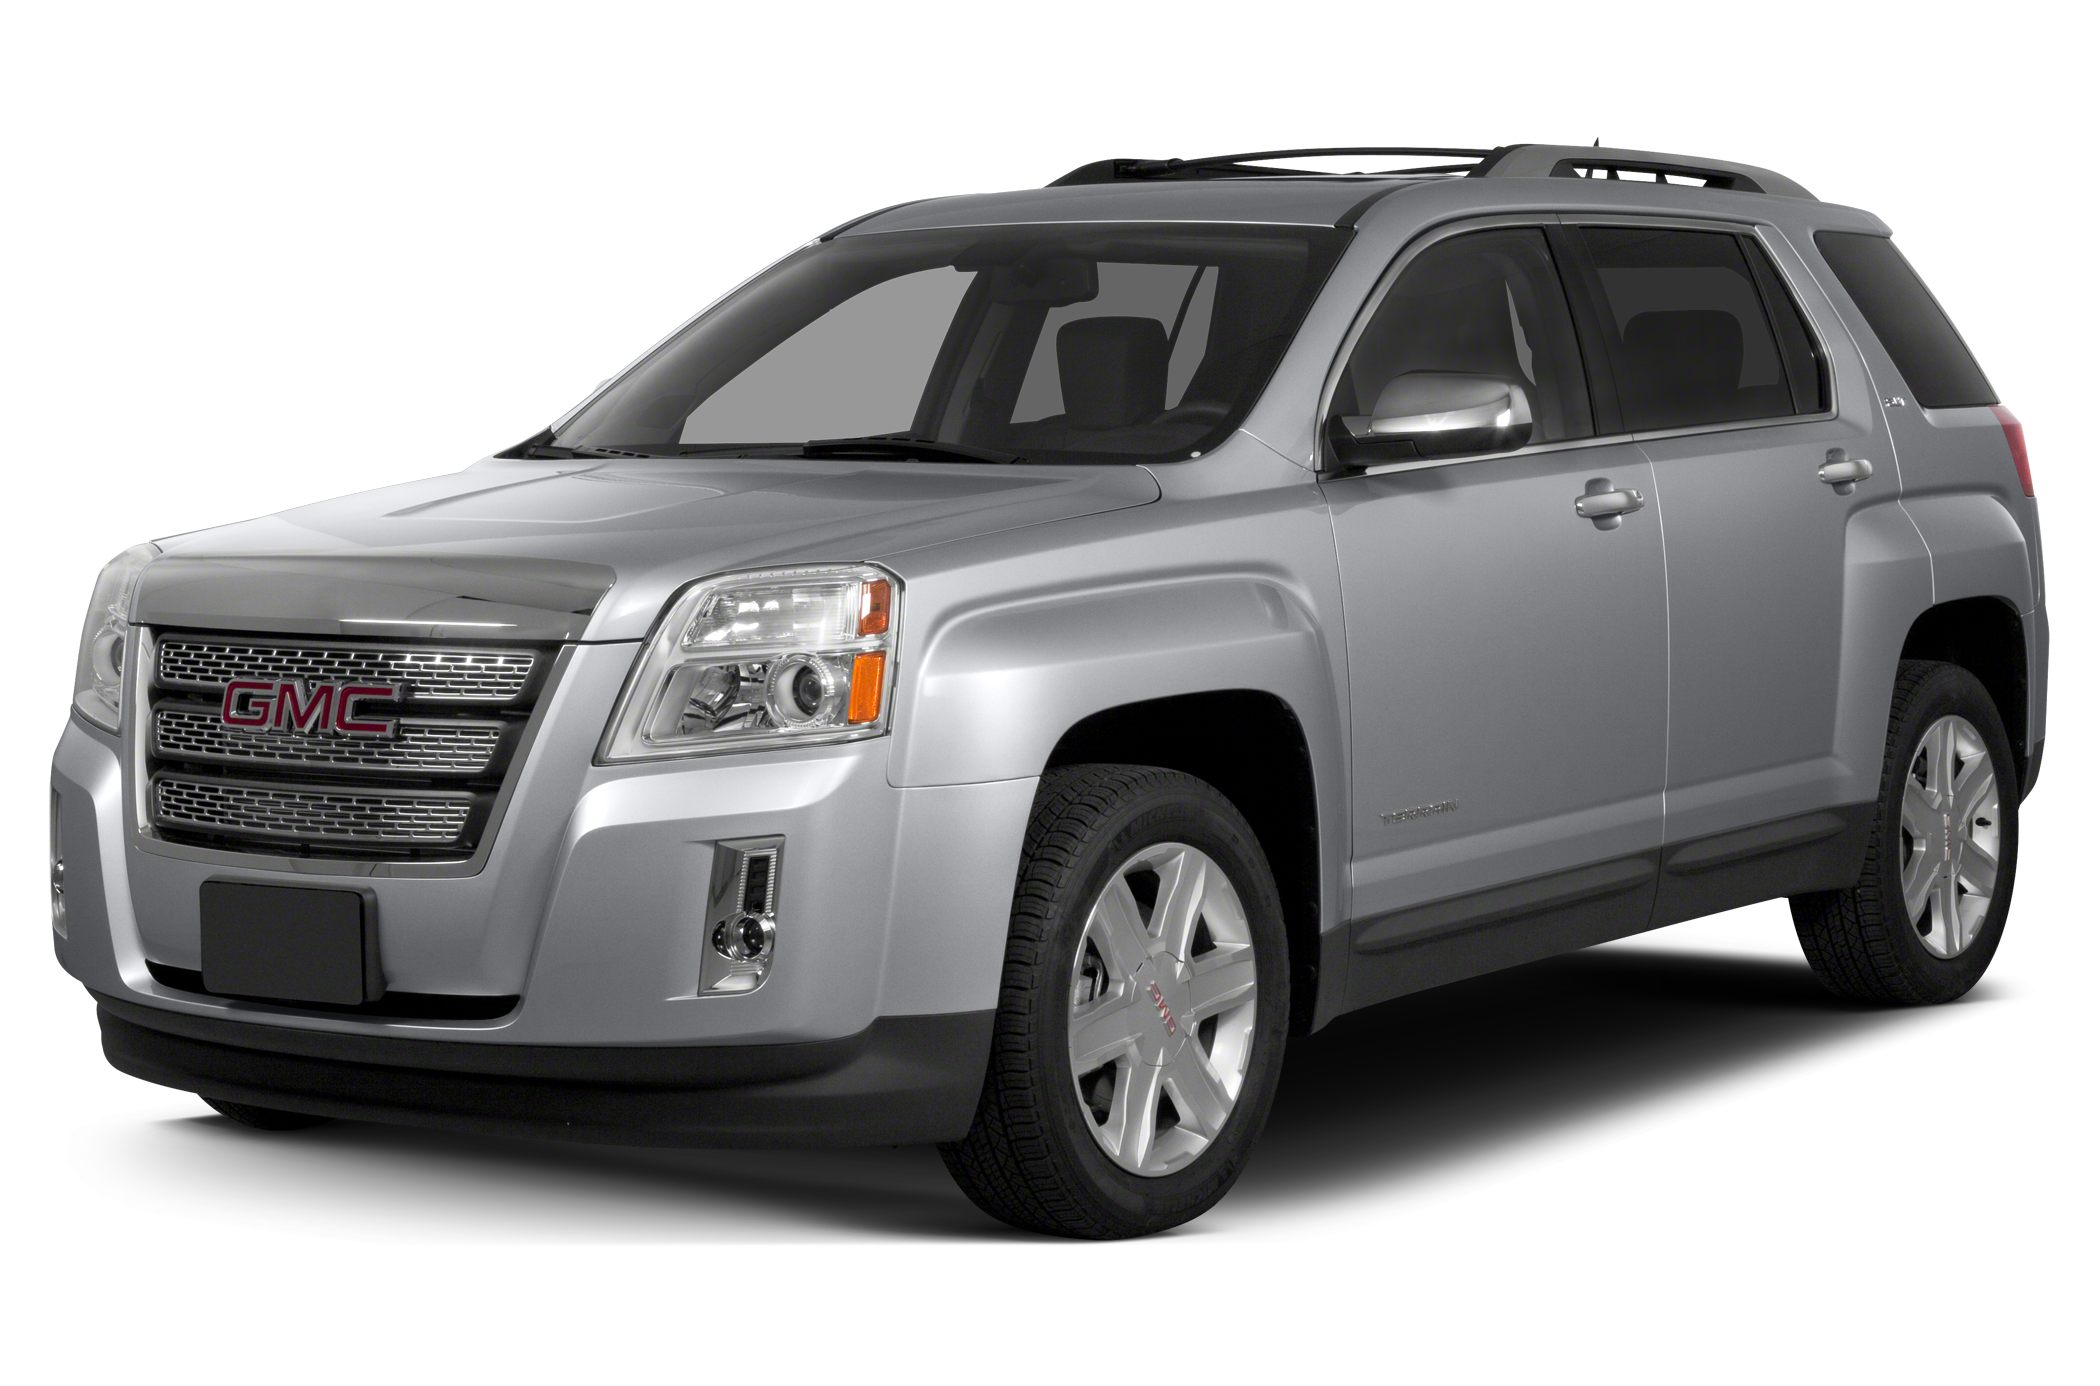 2015 GMC Terrain SLT-1 Outfitted with a remote starter stability control traction control anti-